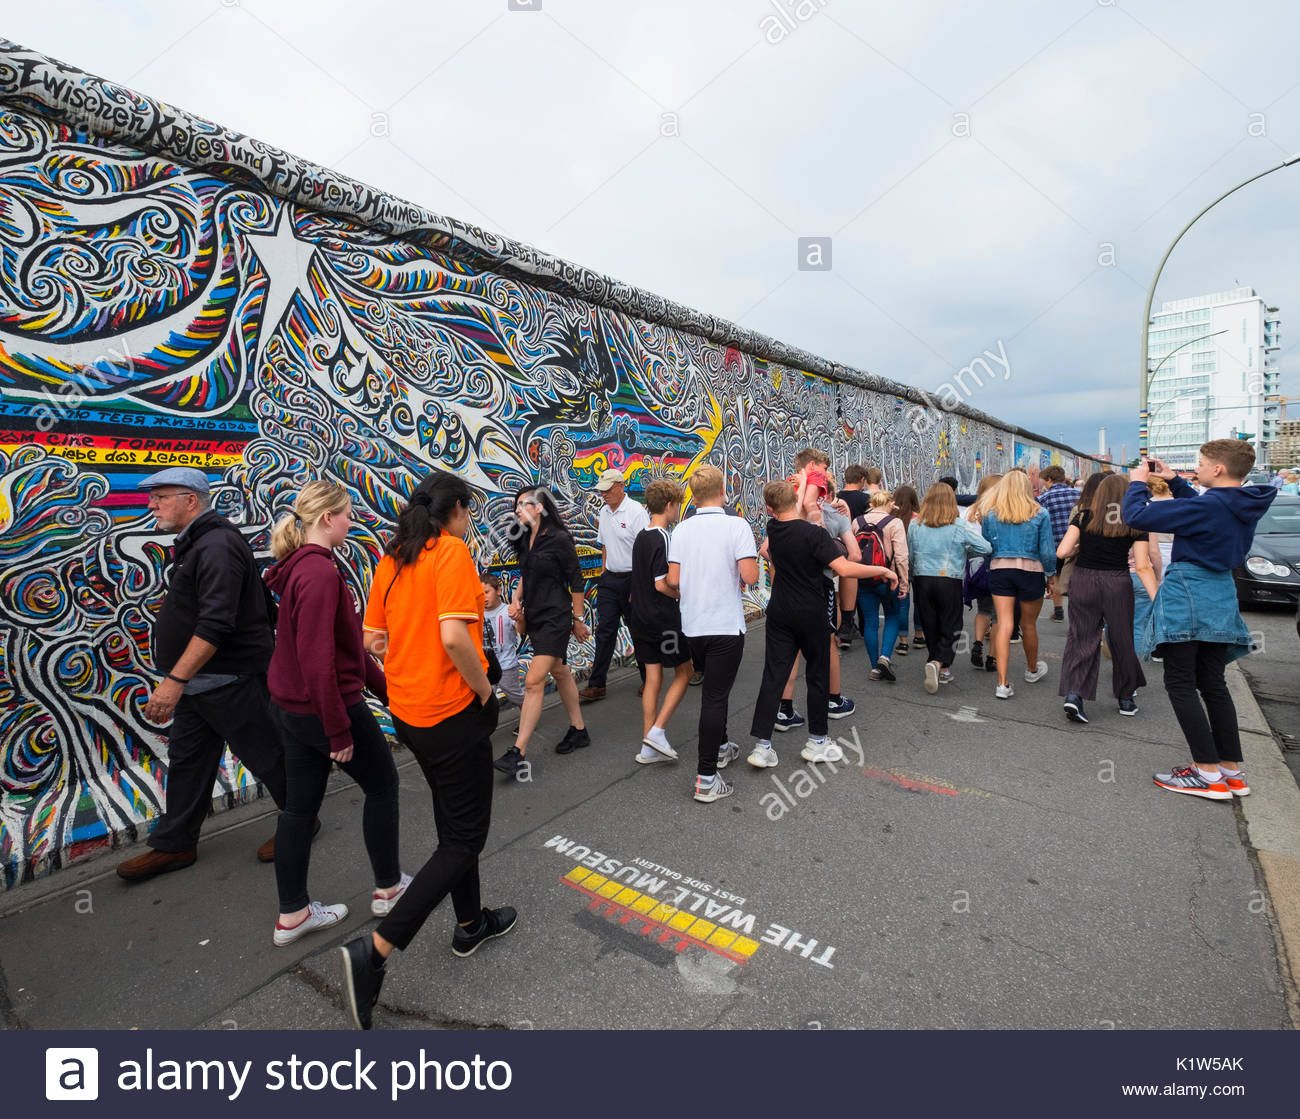 Many tourists walk past mural painted on original section of Berlin Wall at East Side gallery in Berlin, Germany - Stock Image